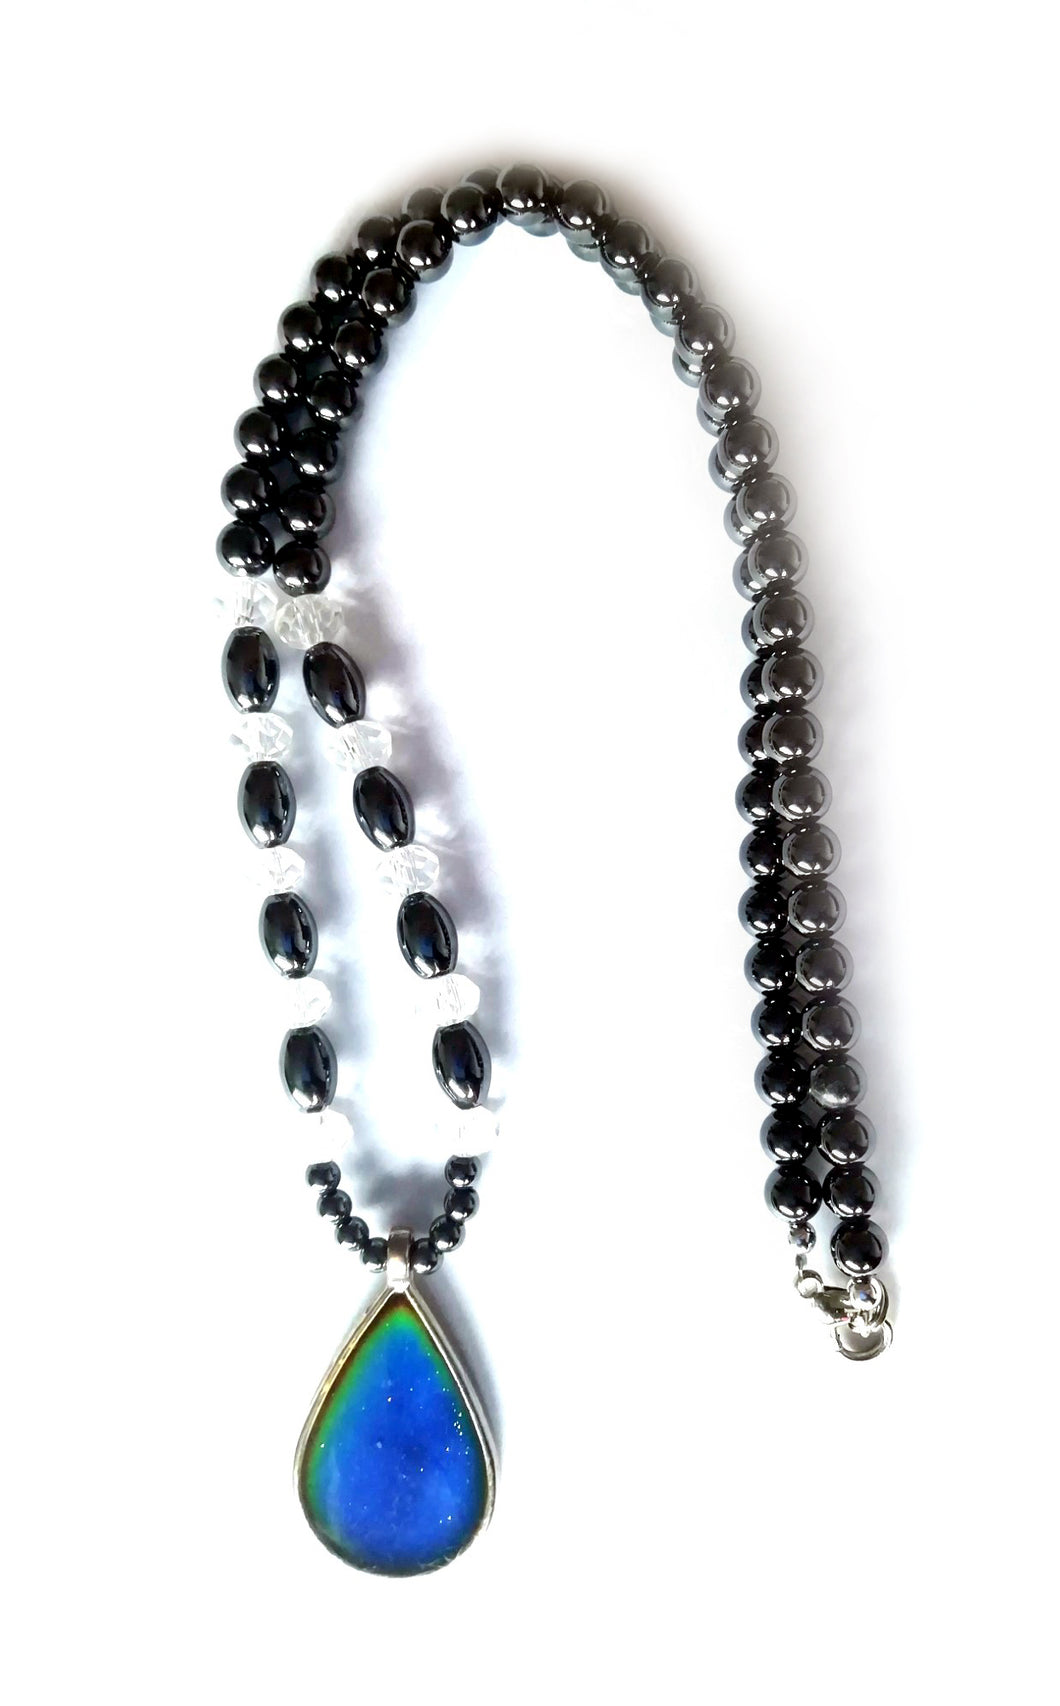 teardrop magnetic hematite mood necklace with beads by best mood rings